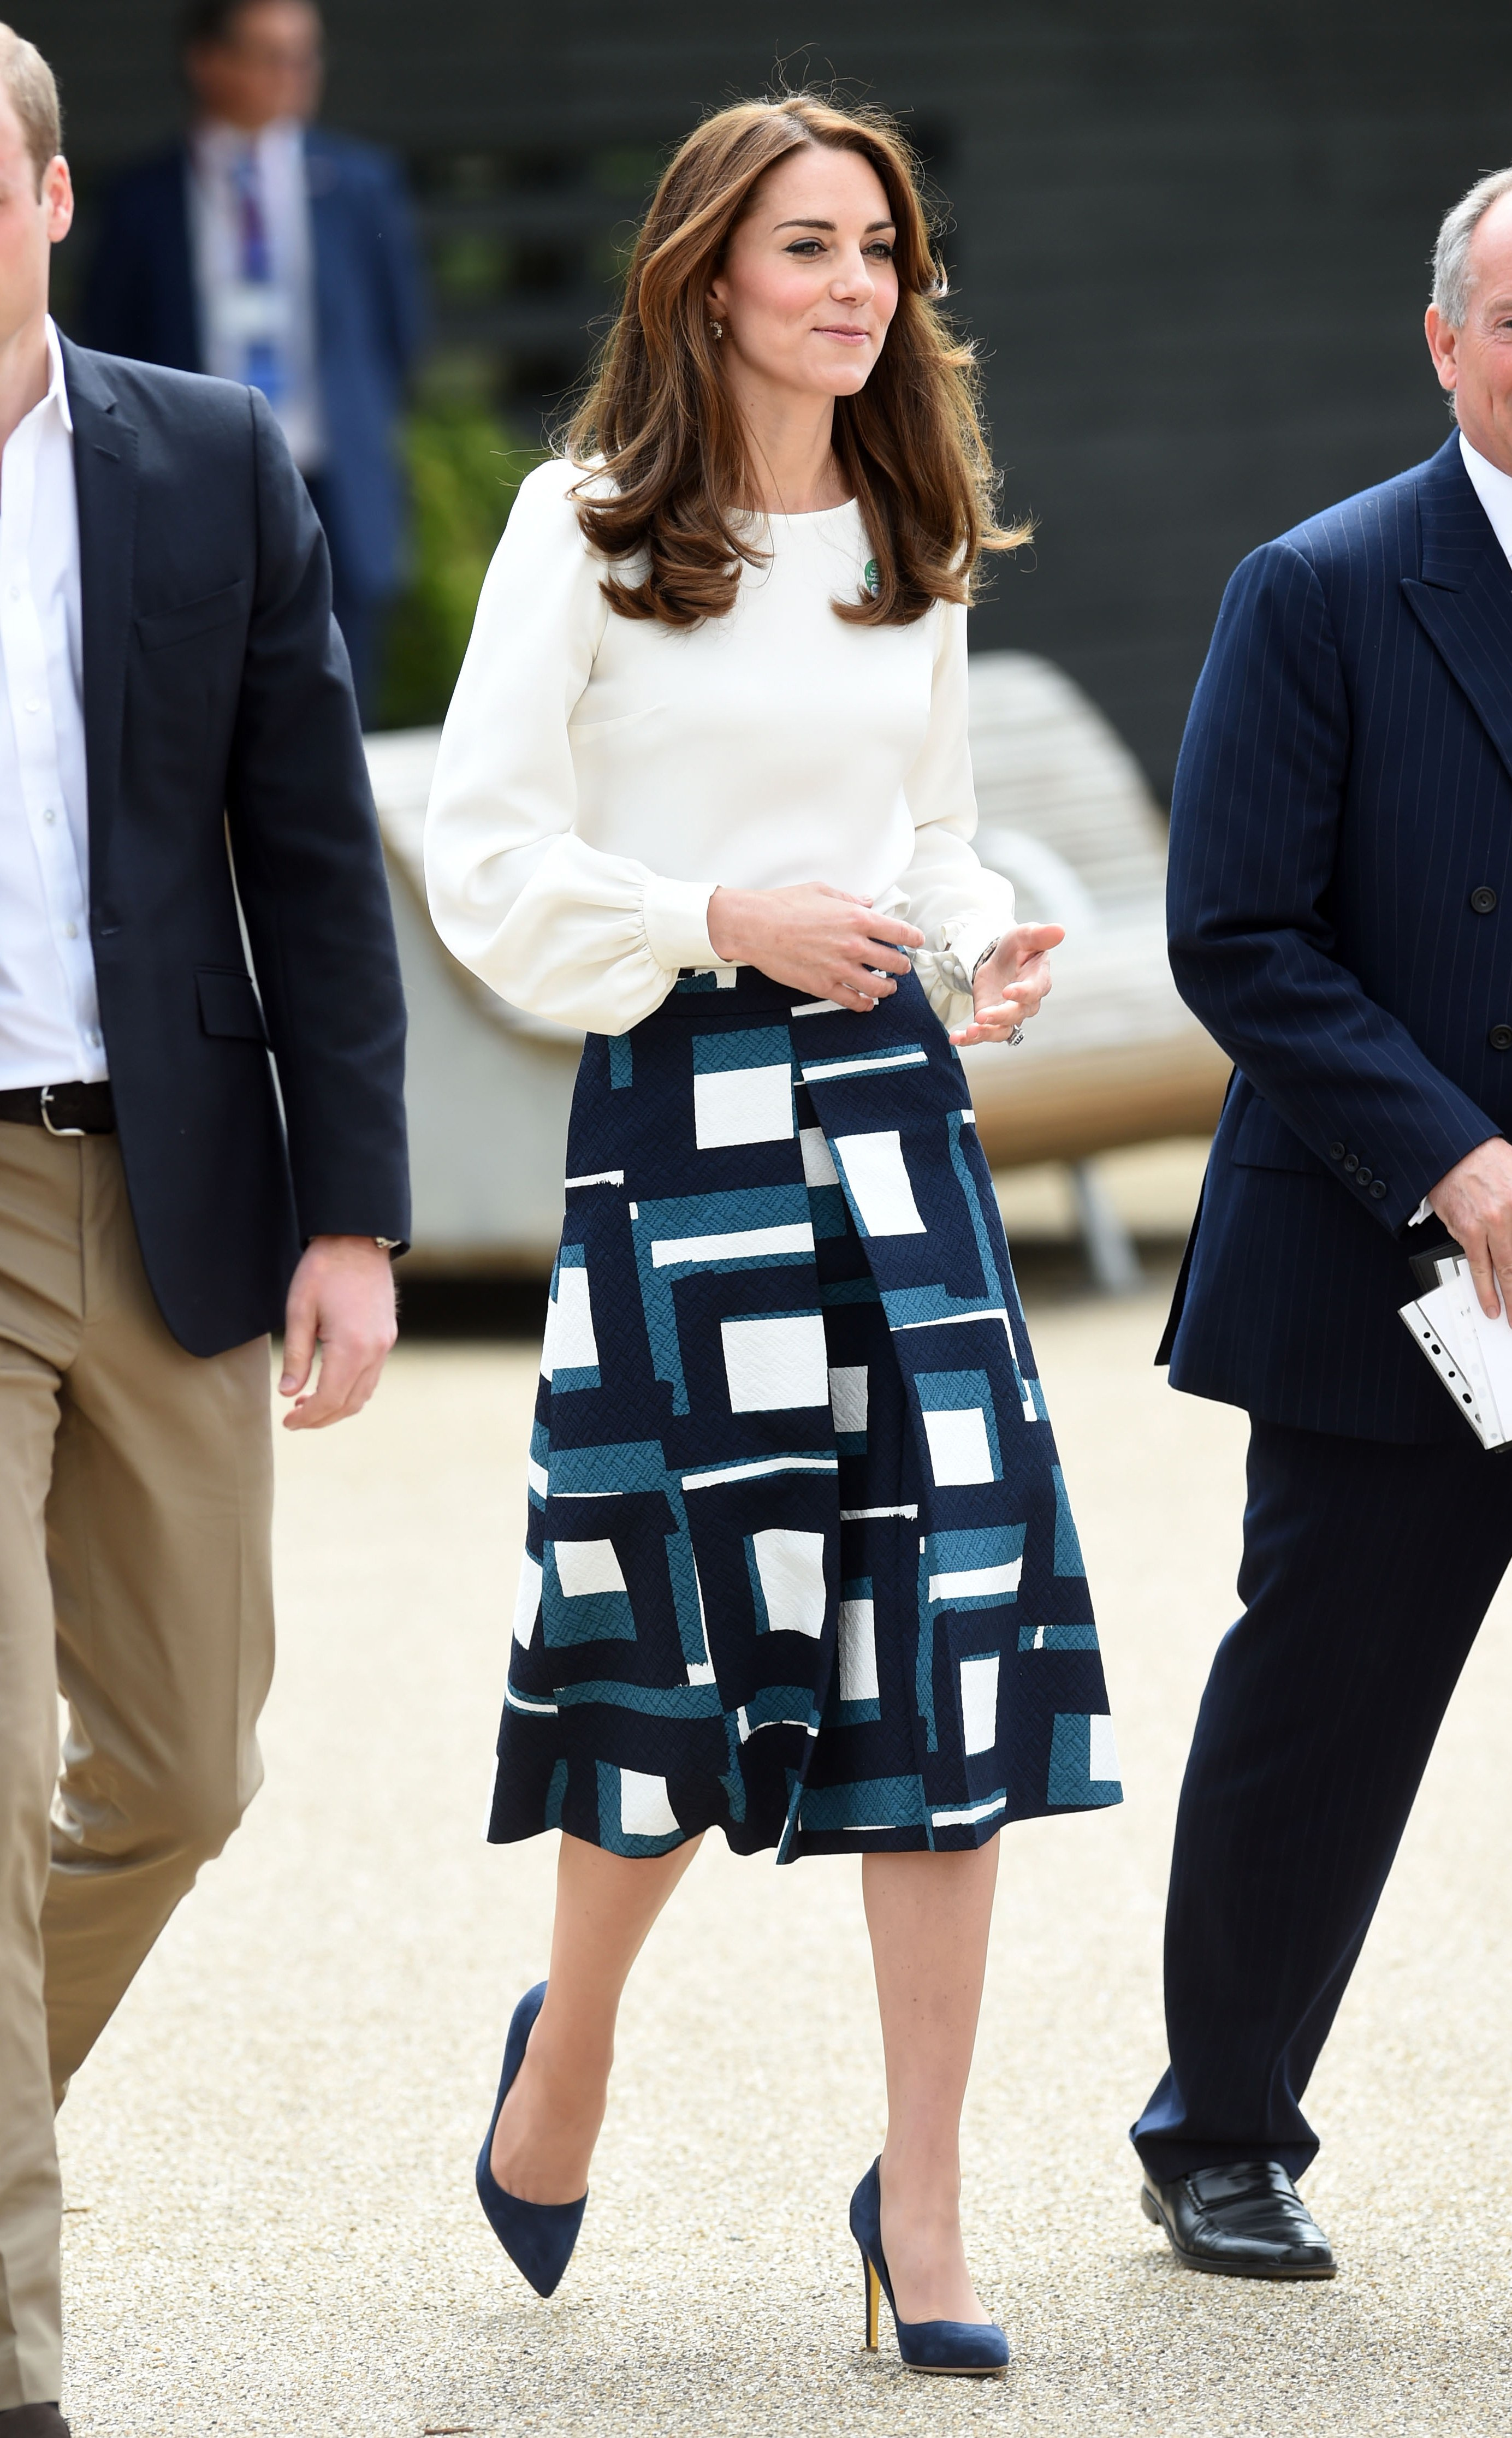 Wear the midi skirt with a fitted top and waist-defining belt to the office. (Photo: Getty Images)